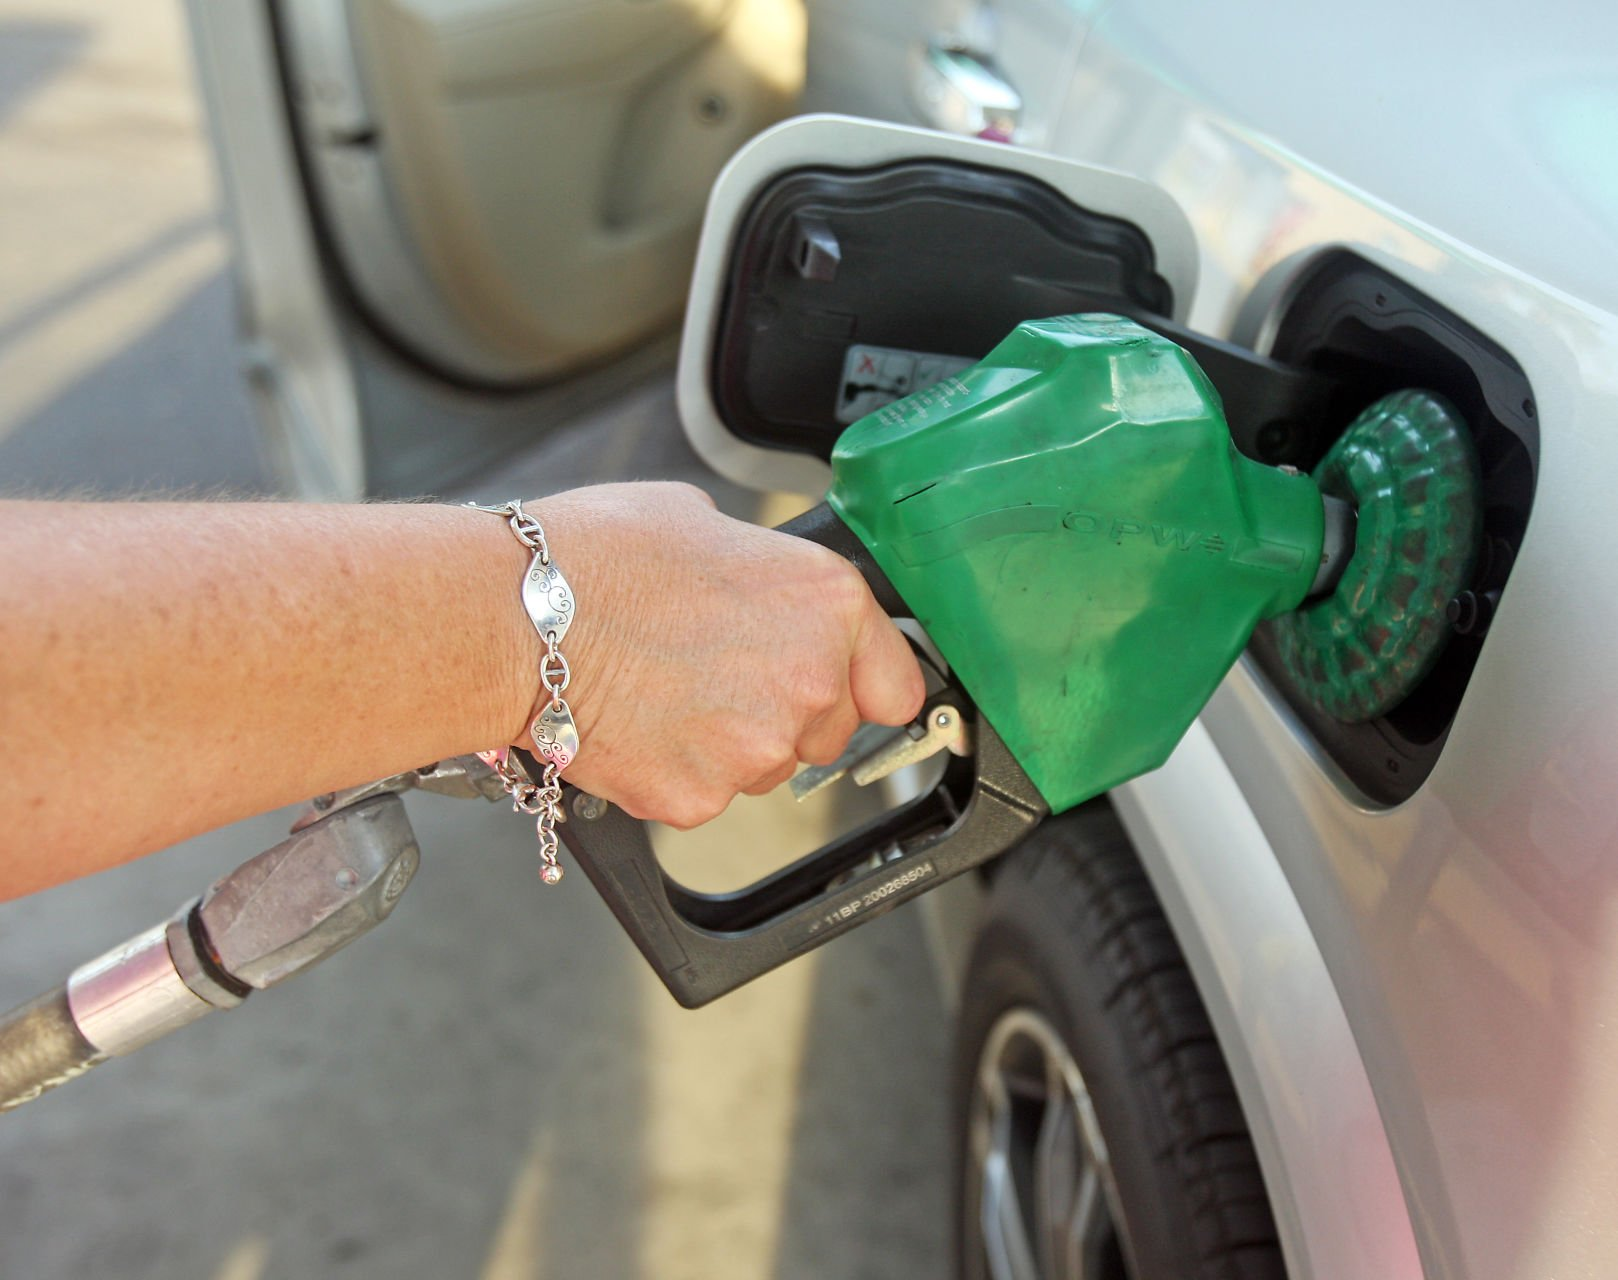 Gas Prices on the Rise Across Florida